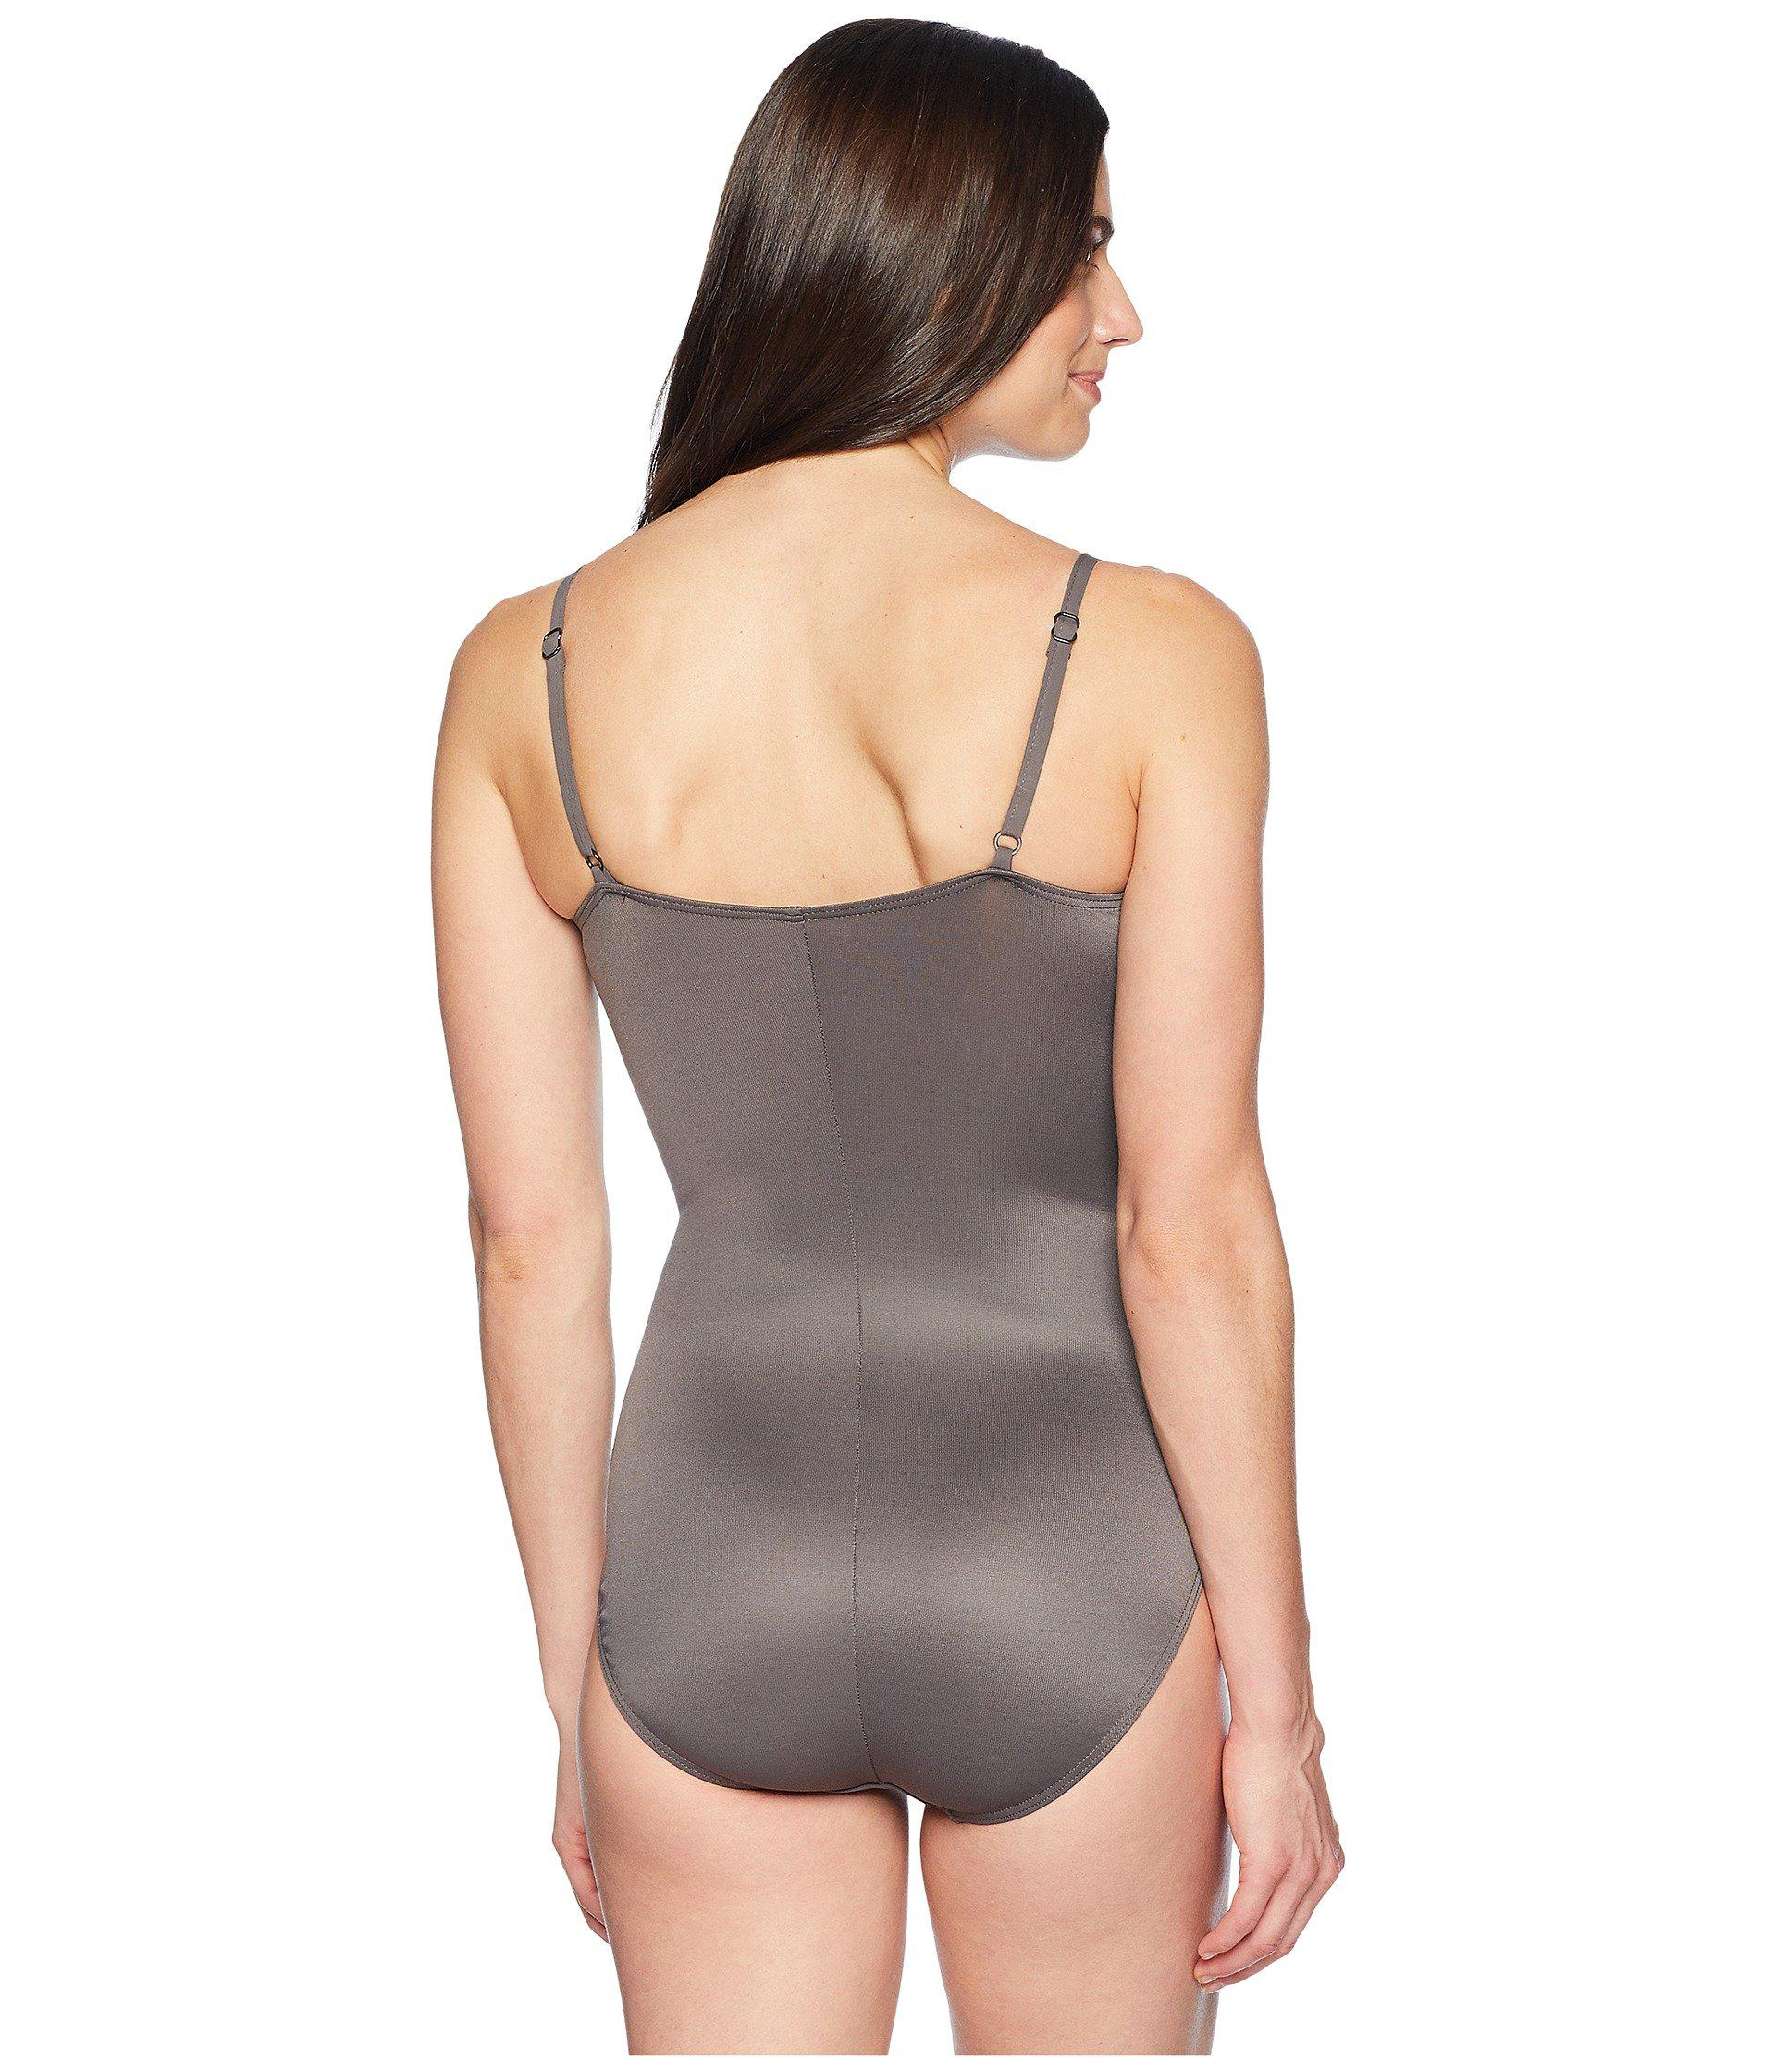 be3e5c3c92ab7 Miraclesuit - Gray Rock Solid Love Knot One-piece (mineral) Women s  Swimsuits One. View fullscreen